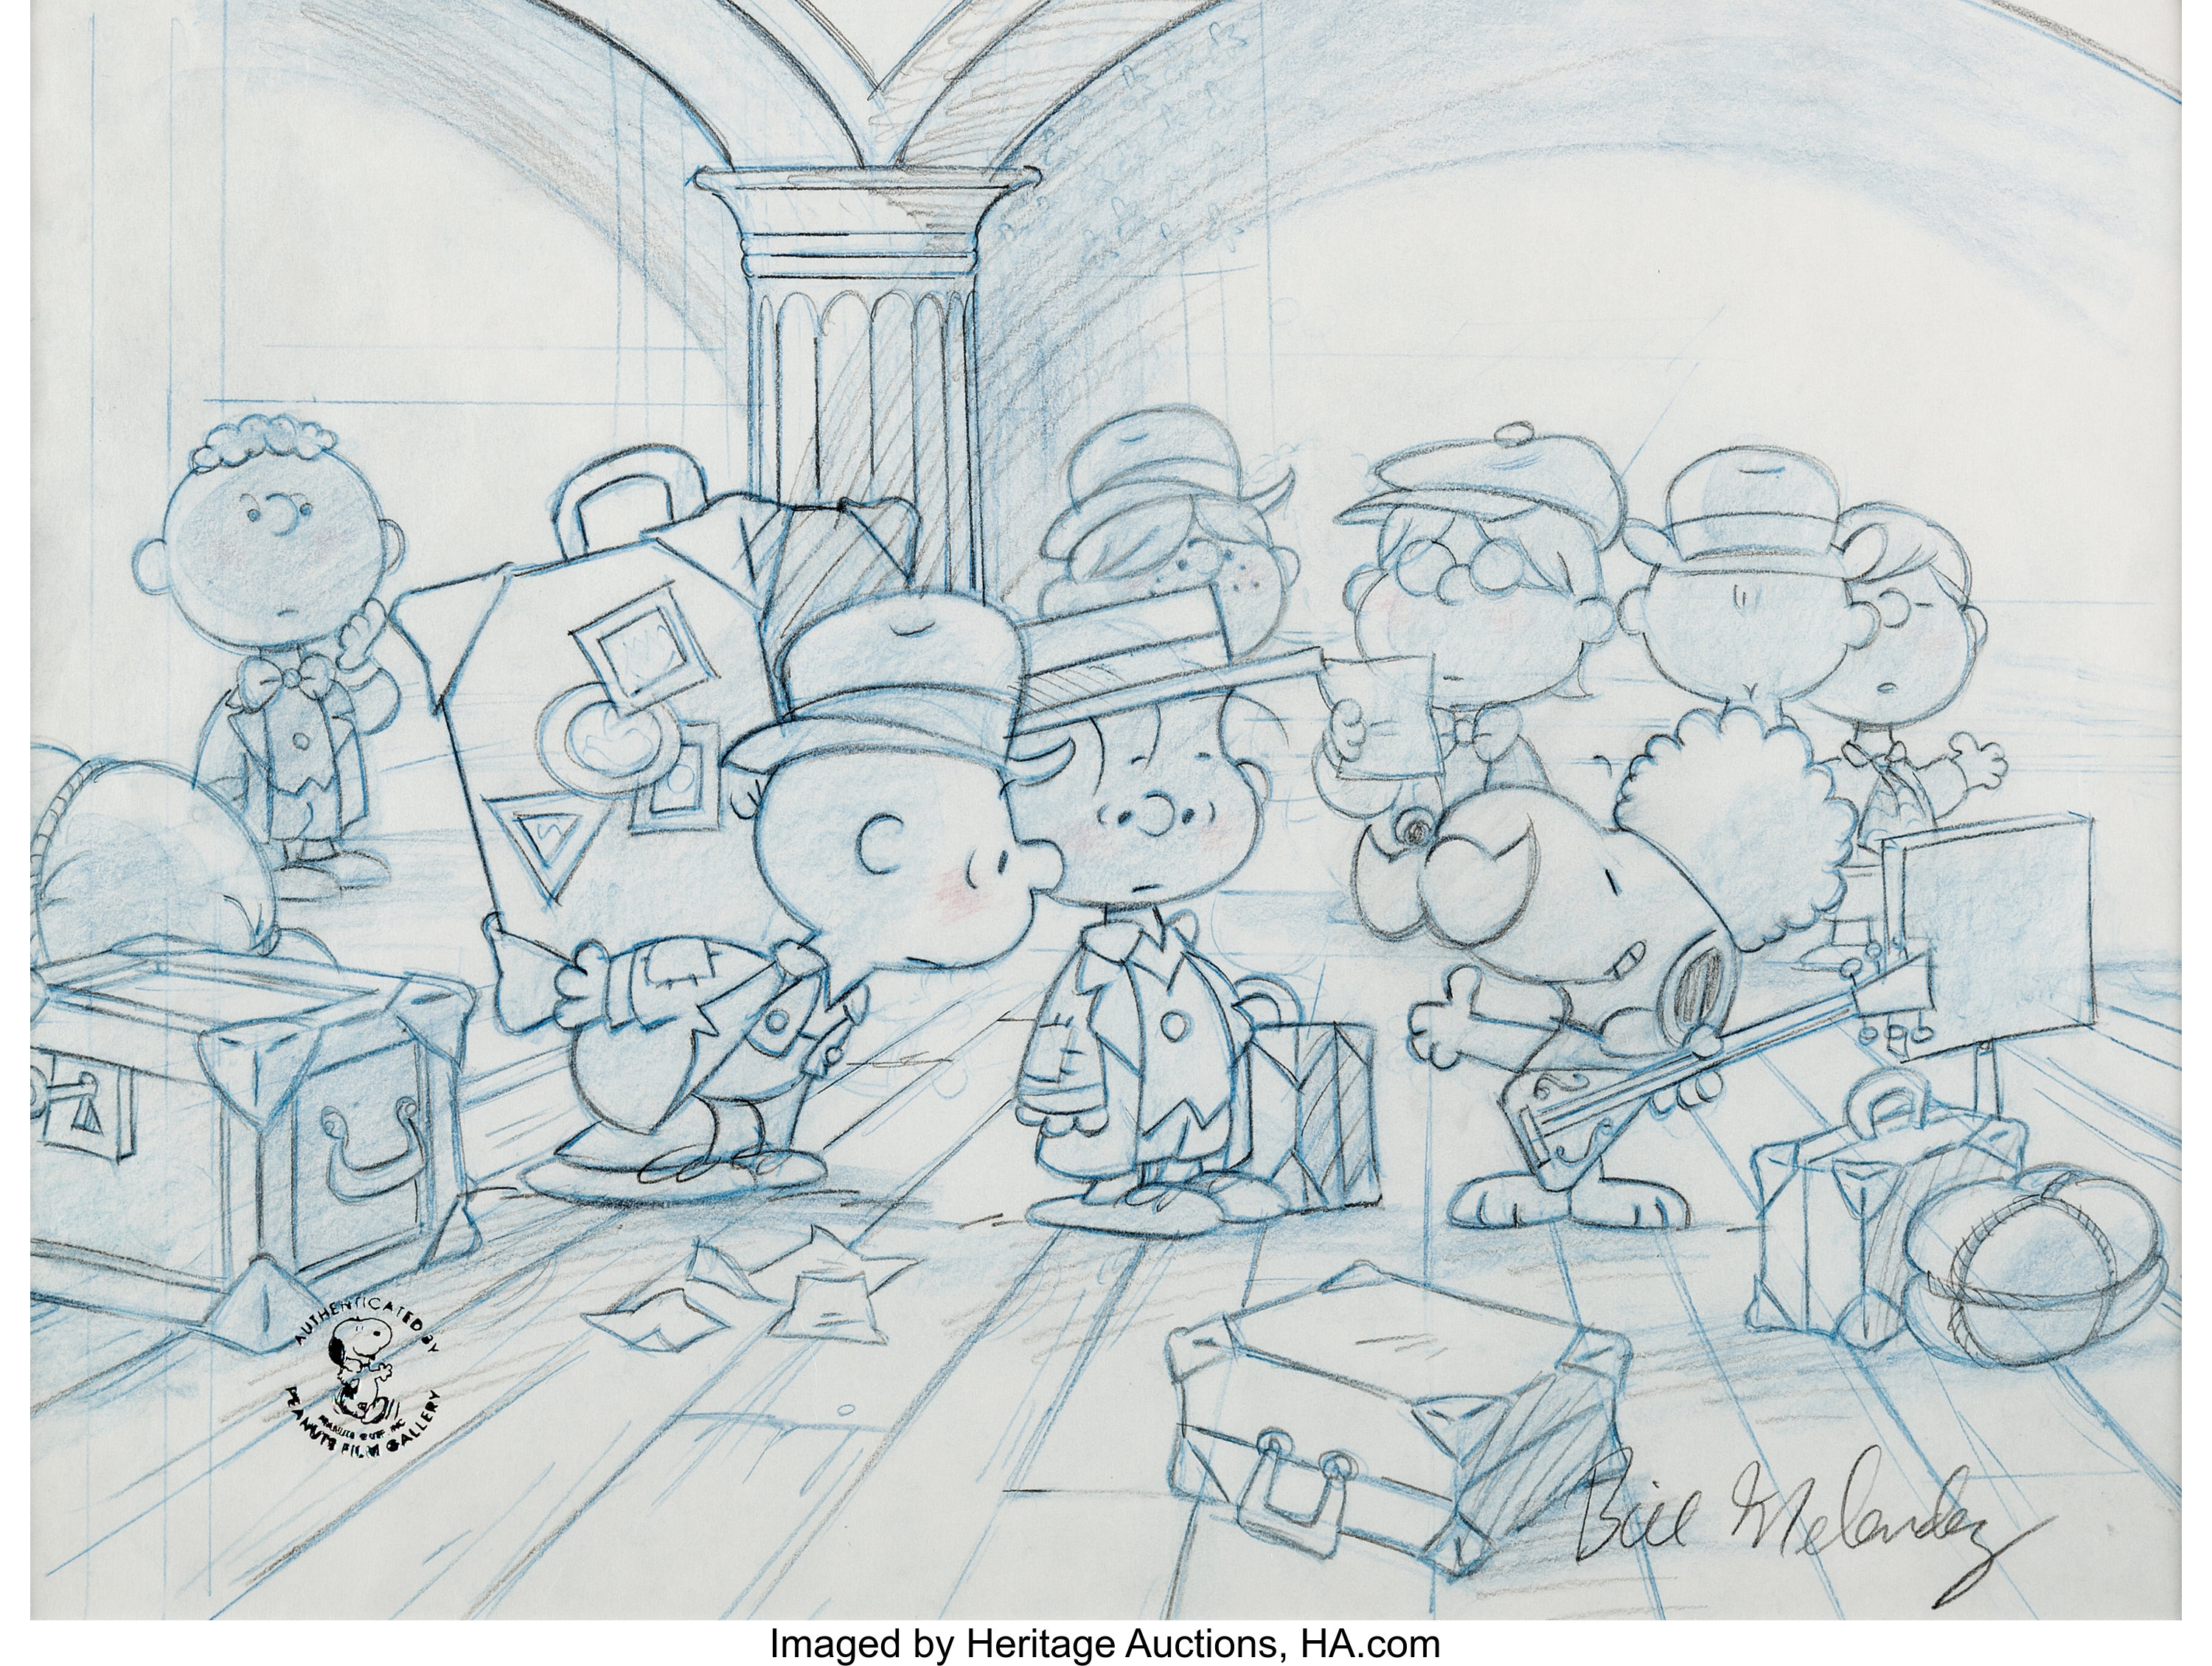 Peanuts – This is America, Charlie Brown Peanuts Concept Layout Drawing Signed by Bill Melendez(1988)